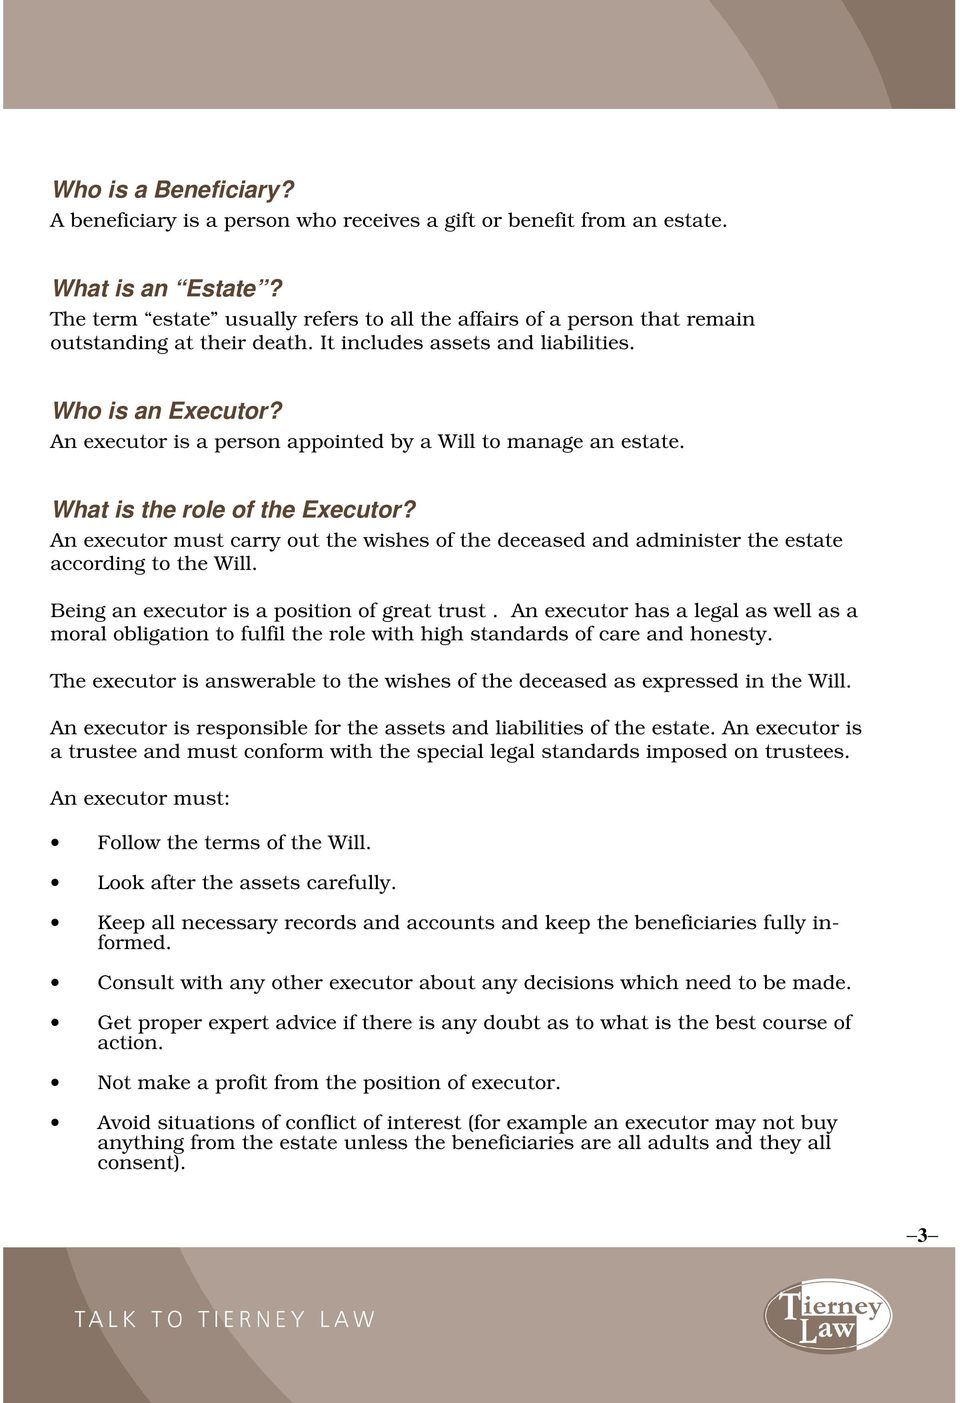 An executor is a person appointed by a Will to manage an estate. What is the role of the Executor?